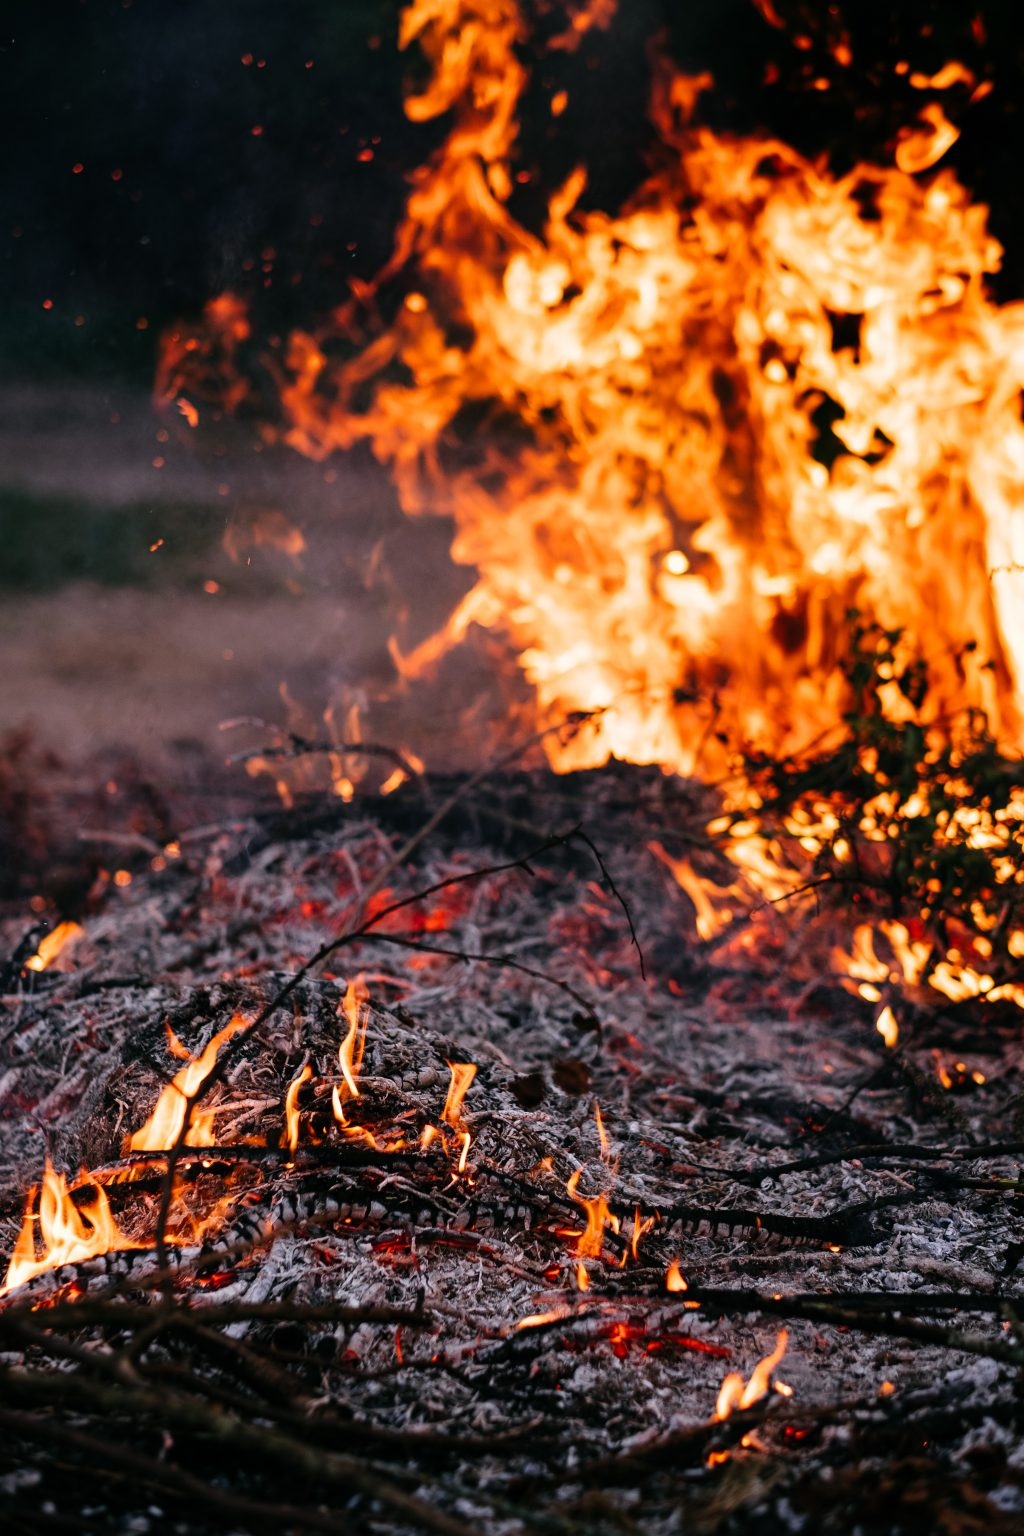 Bonfire flames and ashes 3 - free stock photo